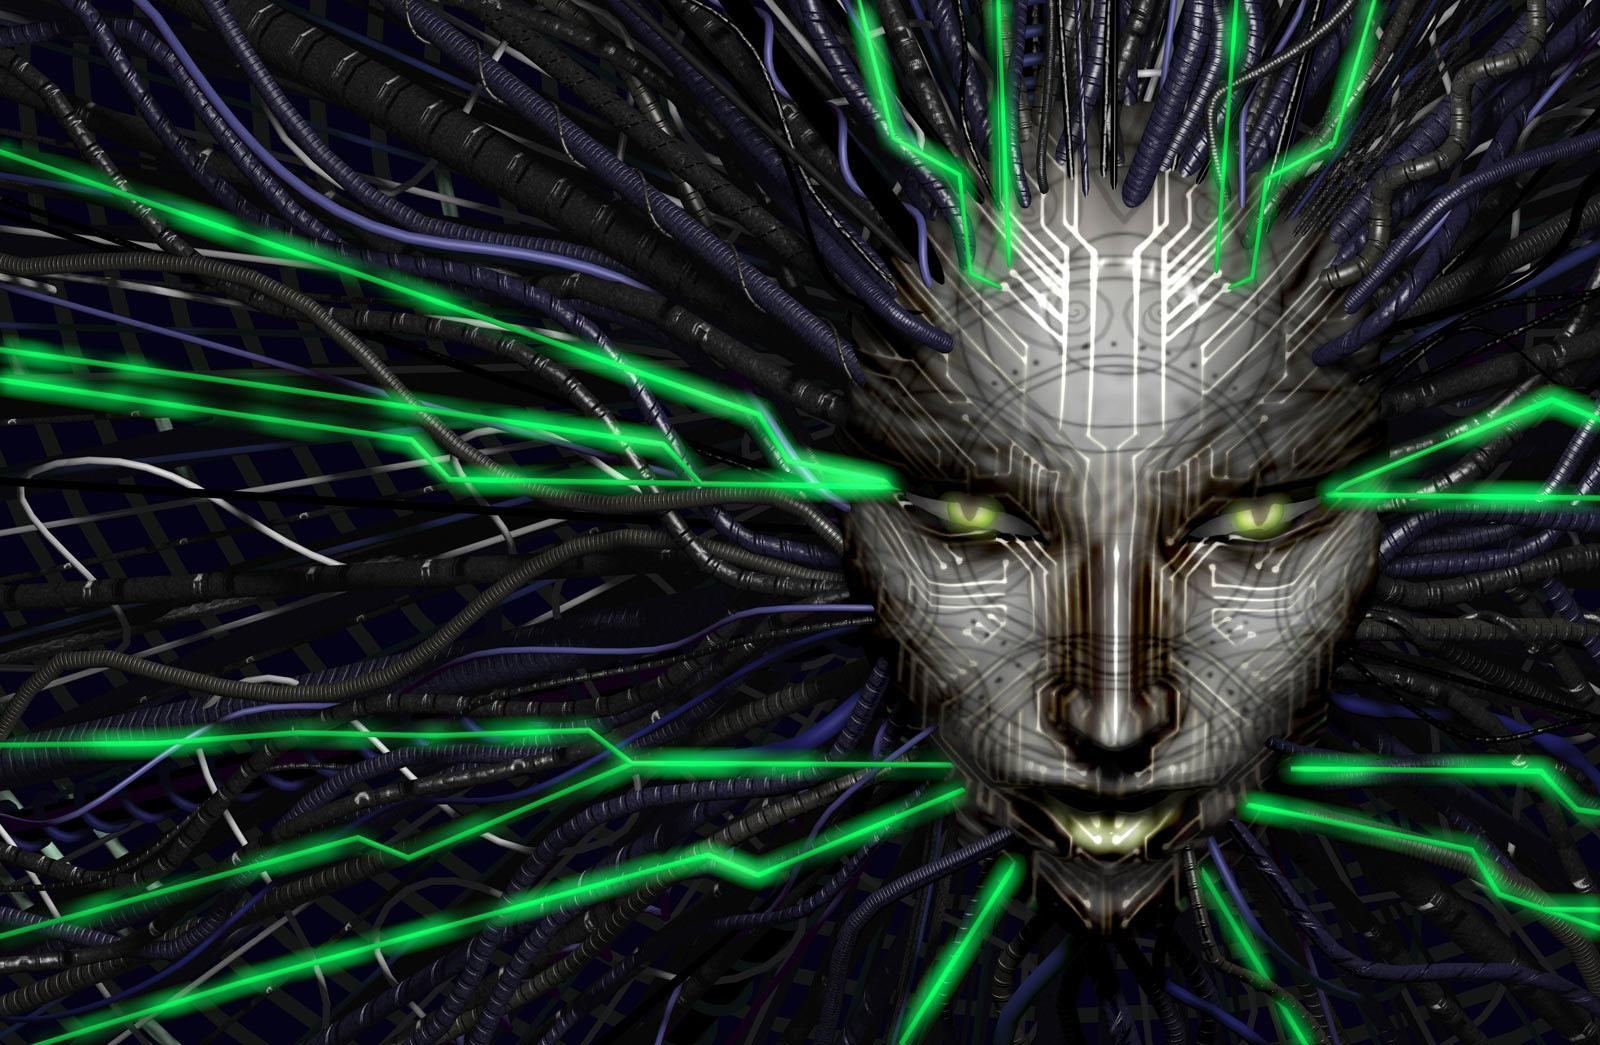 UNILAD b3221352 Legendary Horror Game System Shock Is Getting A Modern Remake